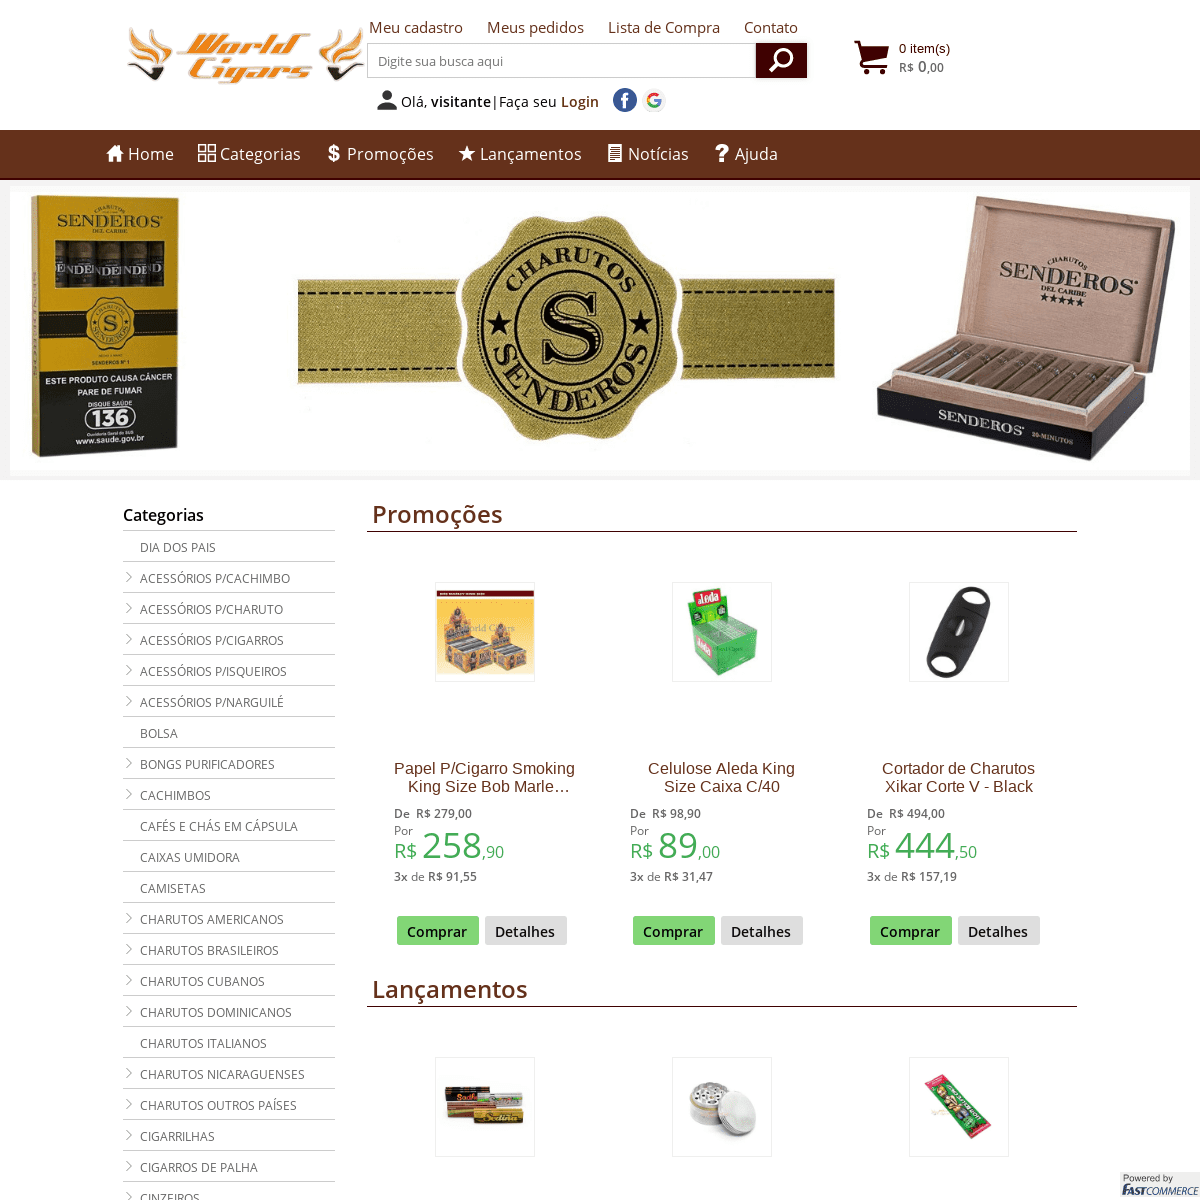 ArchiveBay.com - worldcigars.com.br - Tabacaria Virtual SP - World Cigars Tabacaria e Presentes